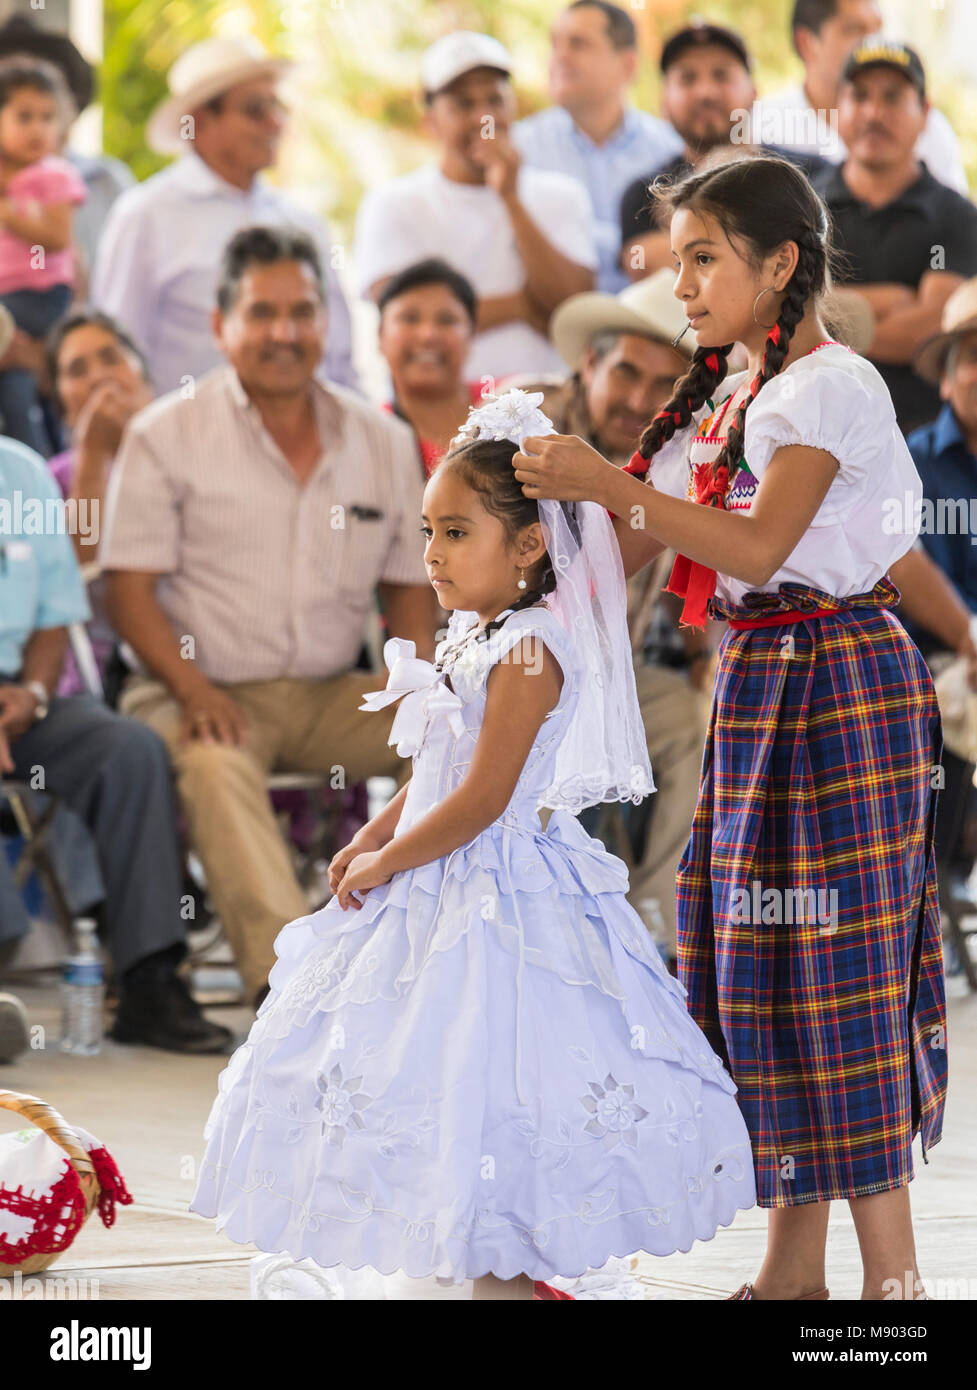 San Juan Teitipac, Oaxaca, Mexico - A child bride gets ready for a pretend wedding during the town's Linguistic - Stock Image